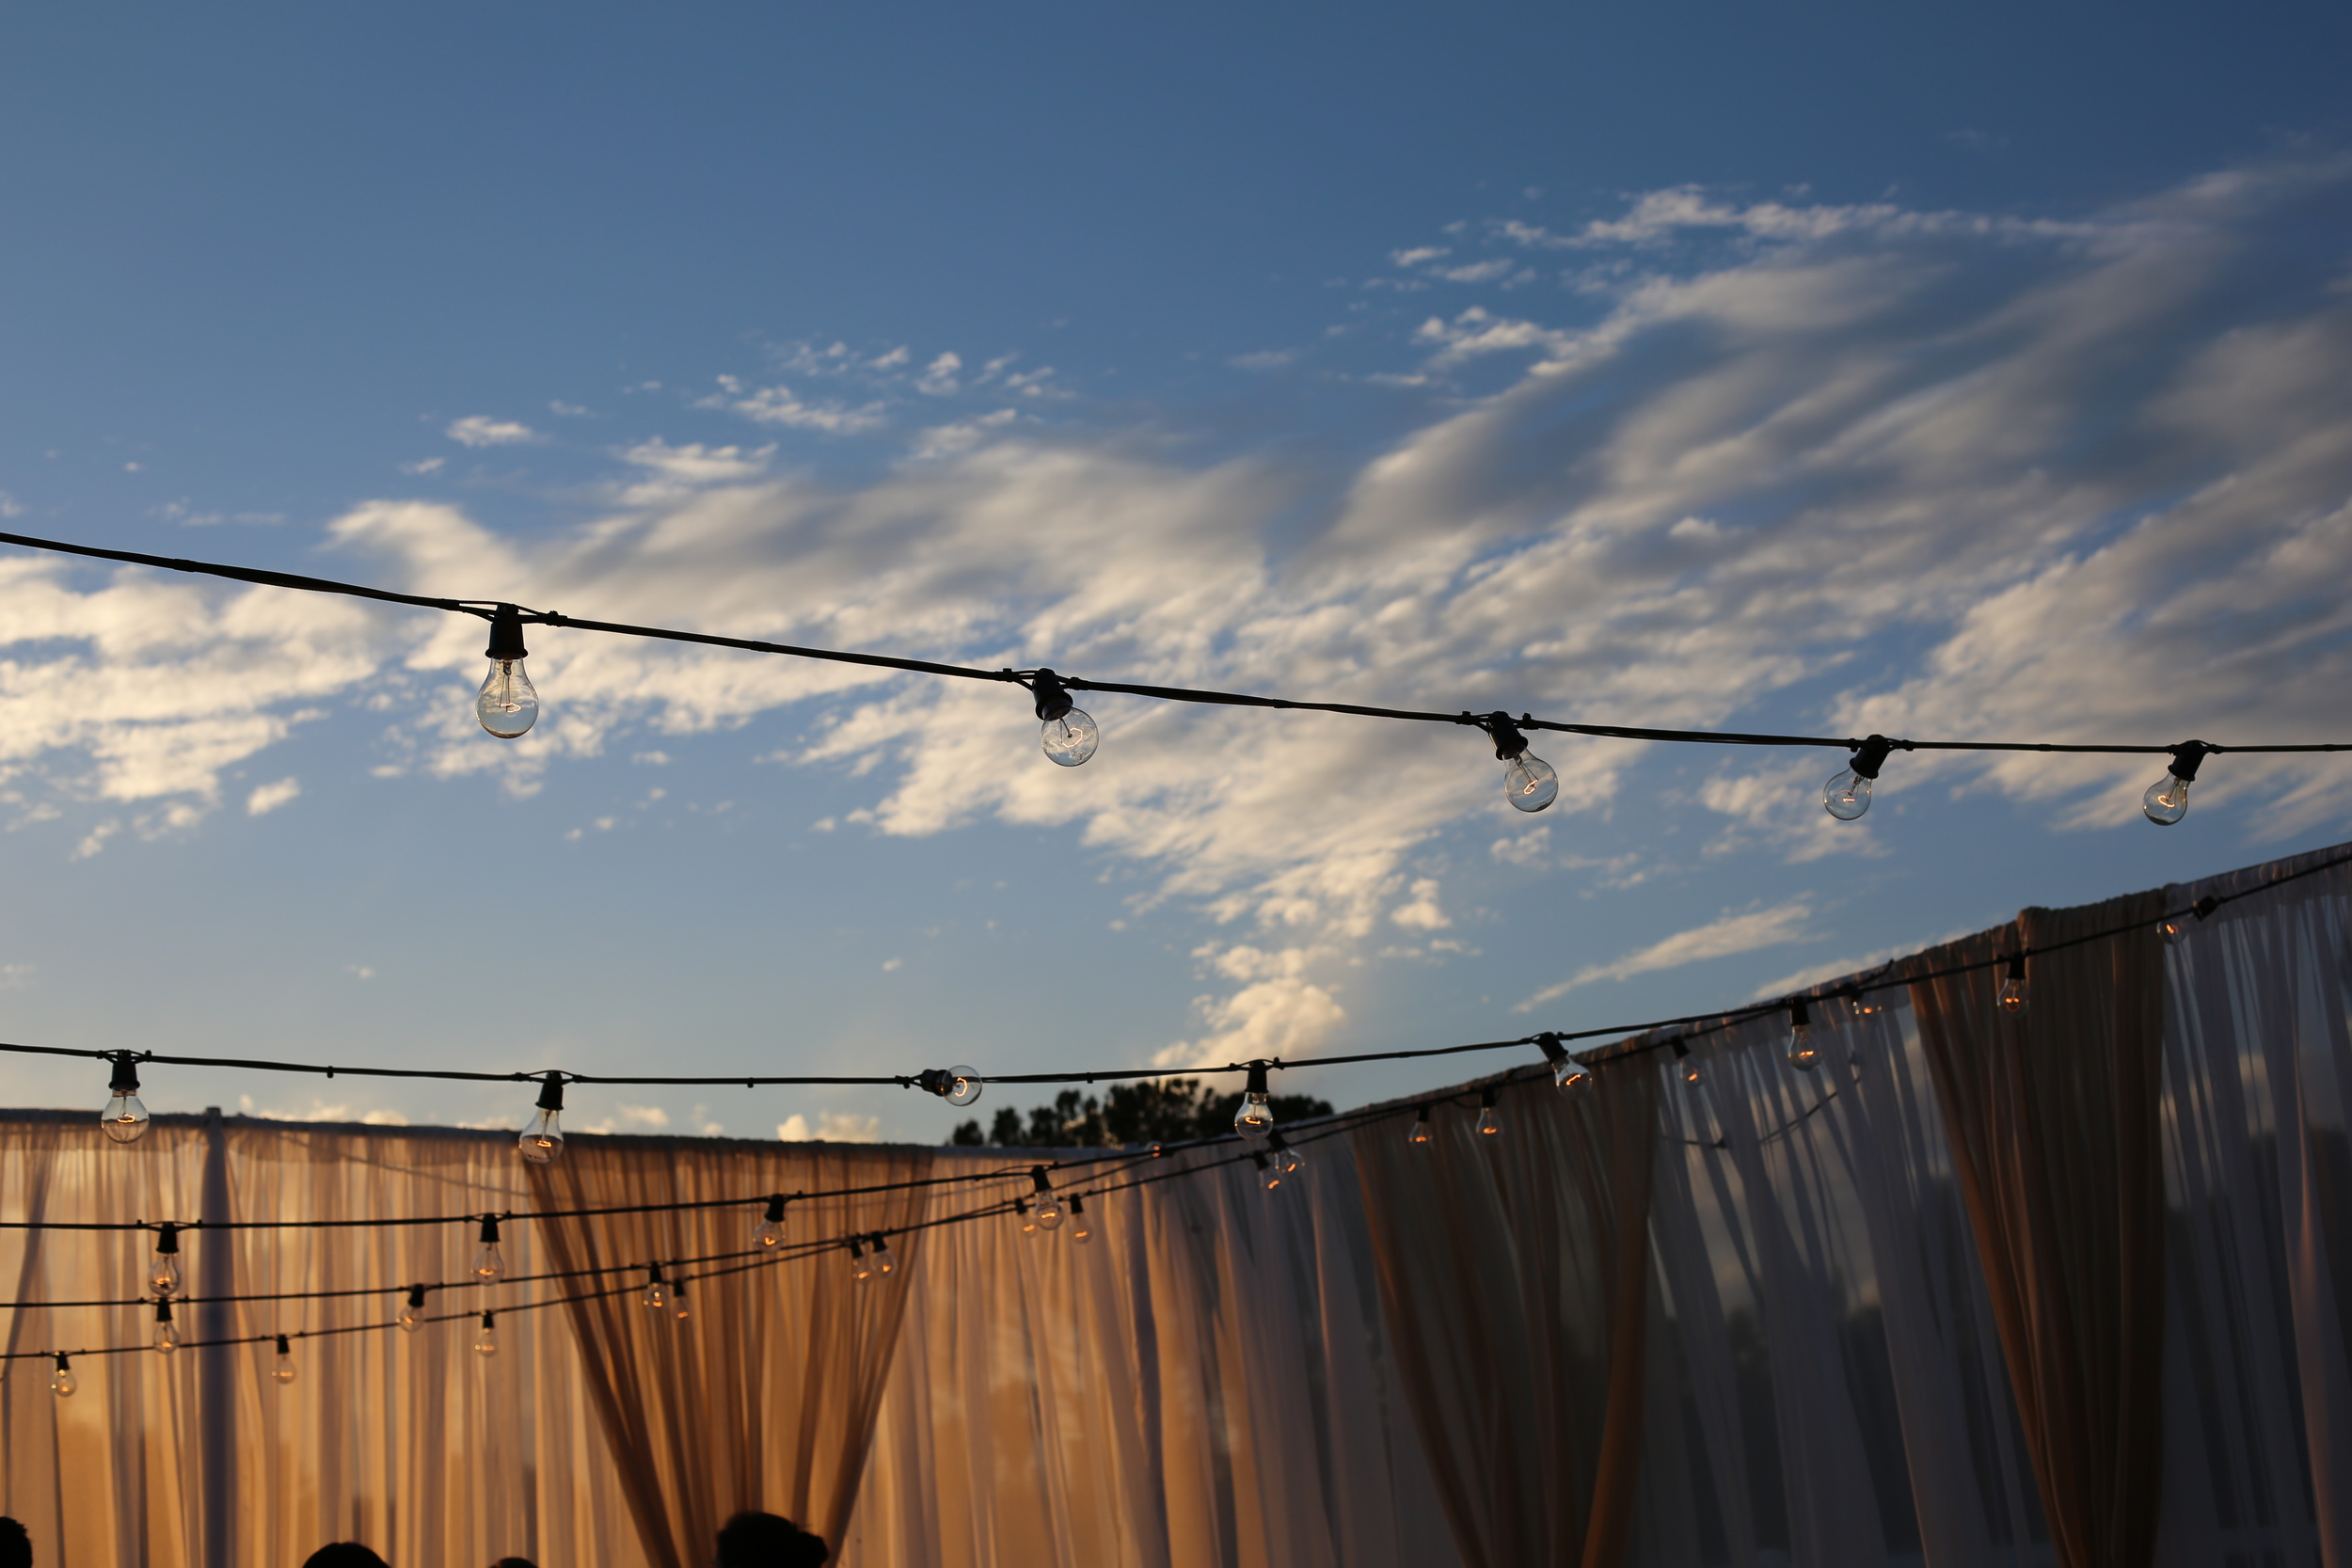 Perfect evening weather for an outdoor party.